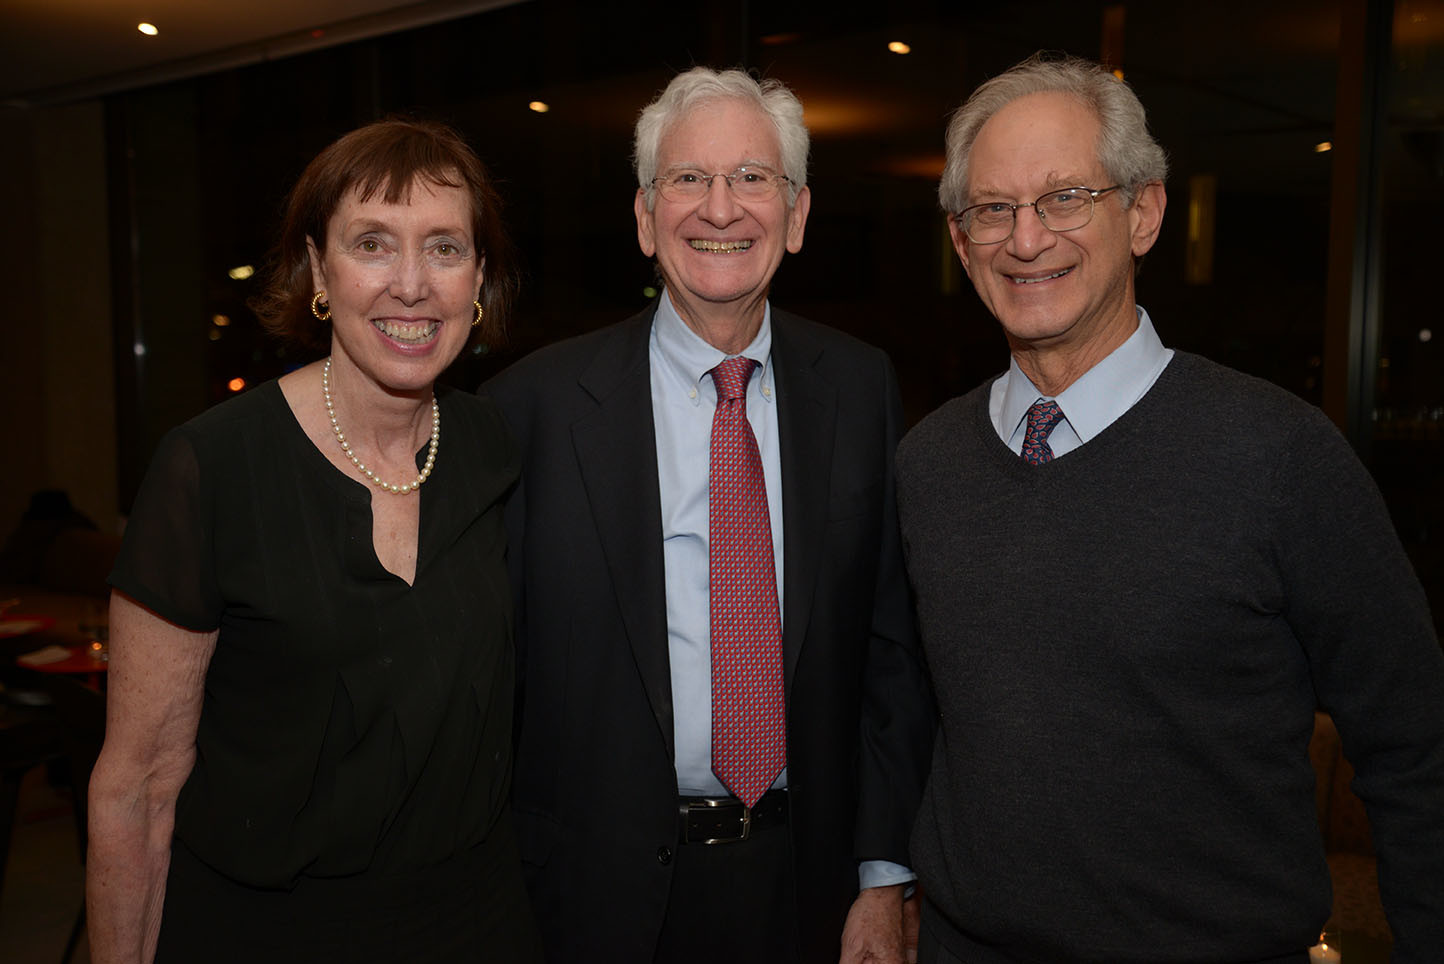 Suzanne Davidson, Board member William Ginsberg, and guest